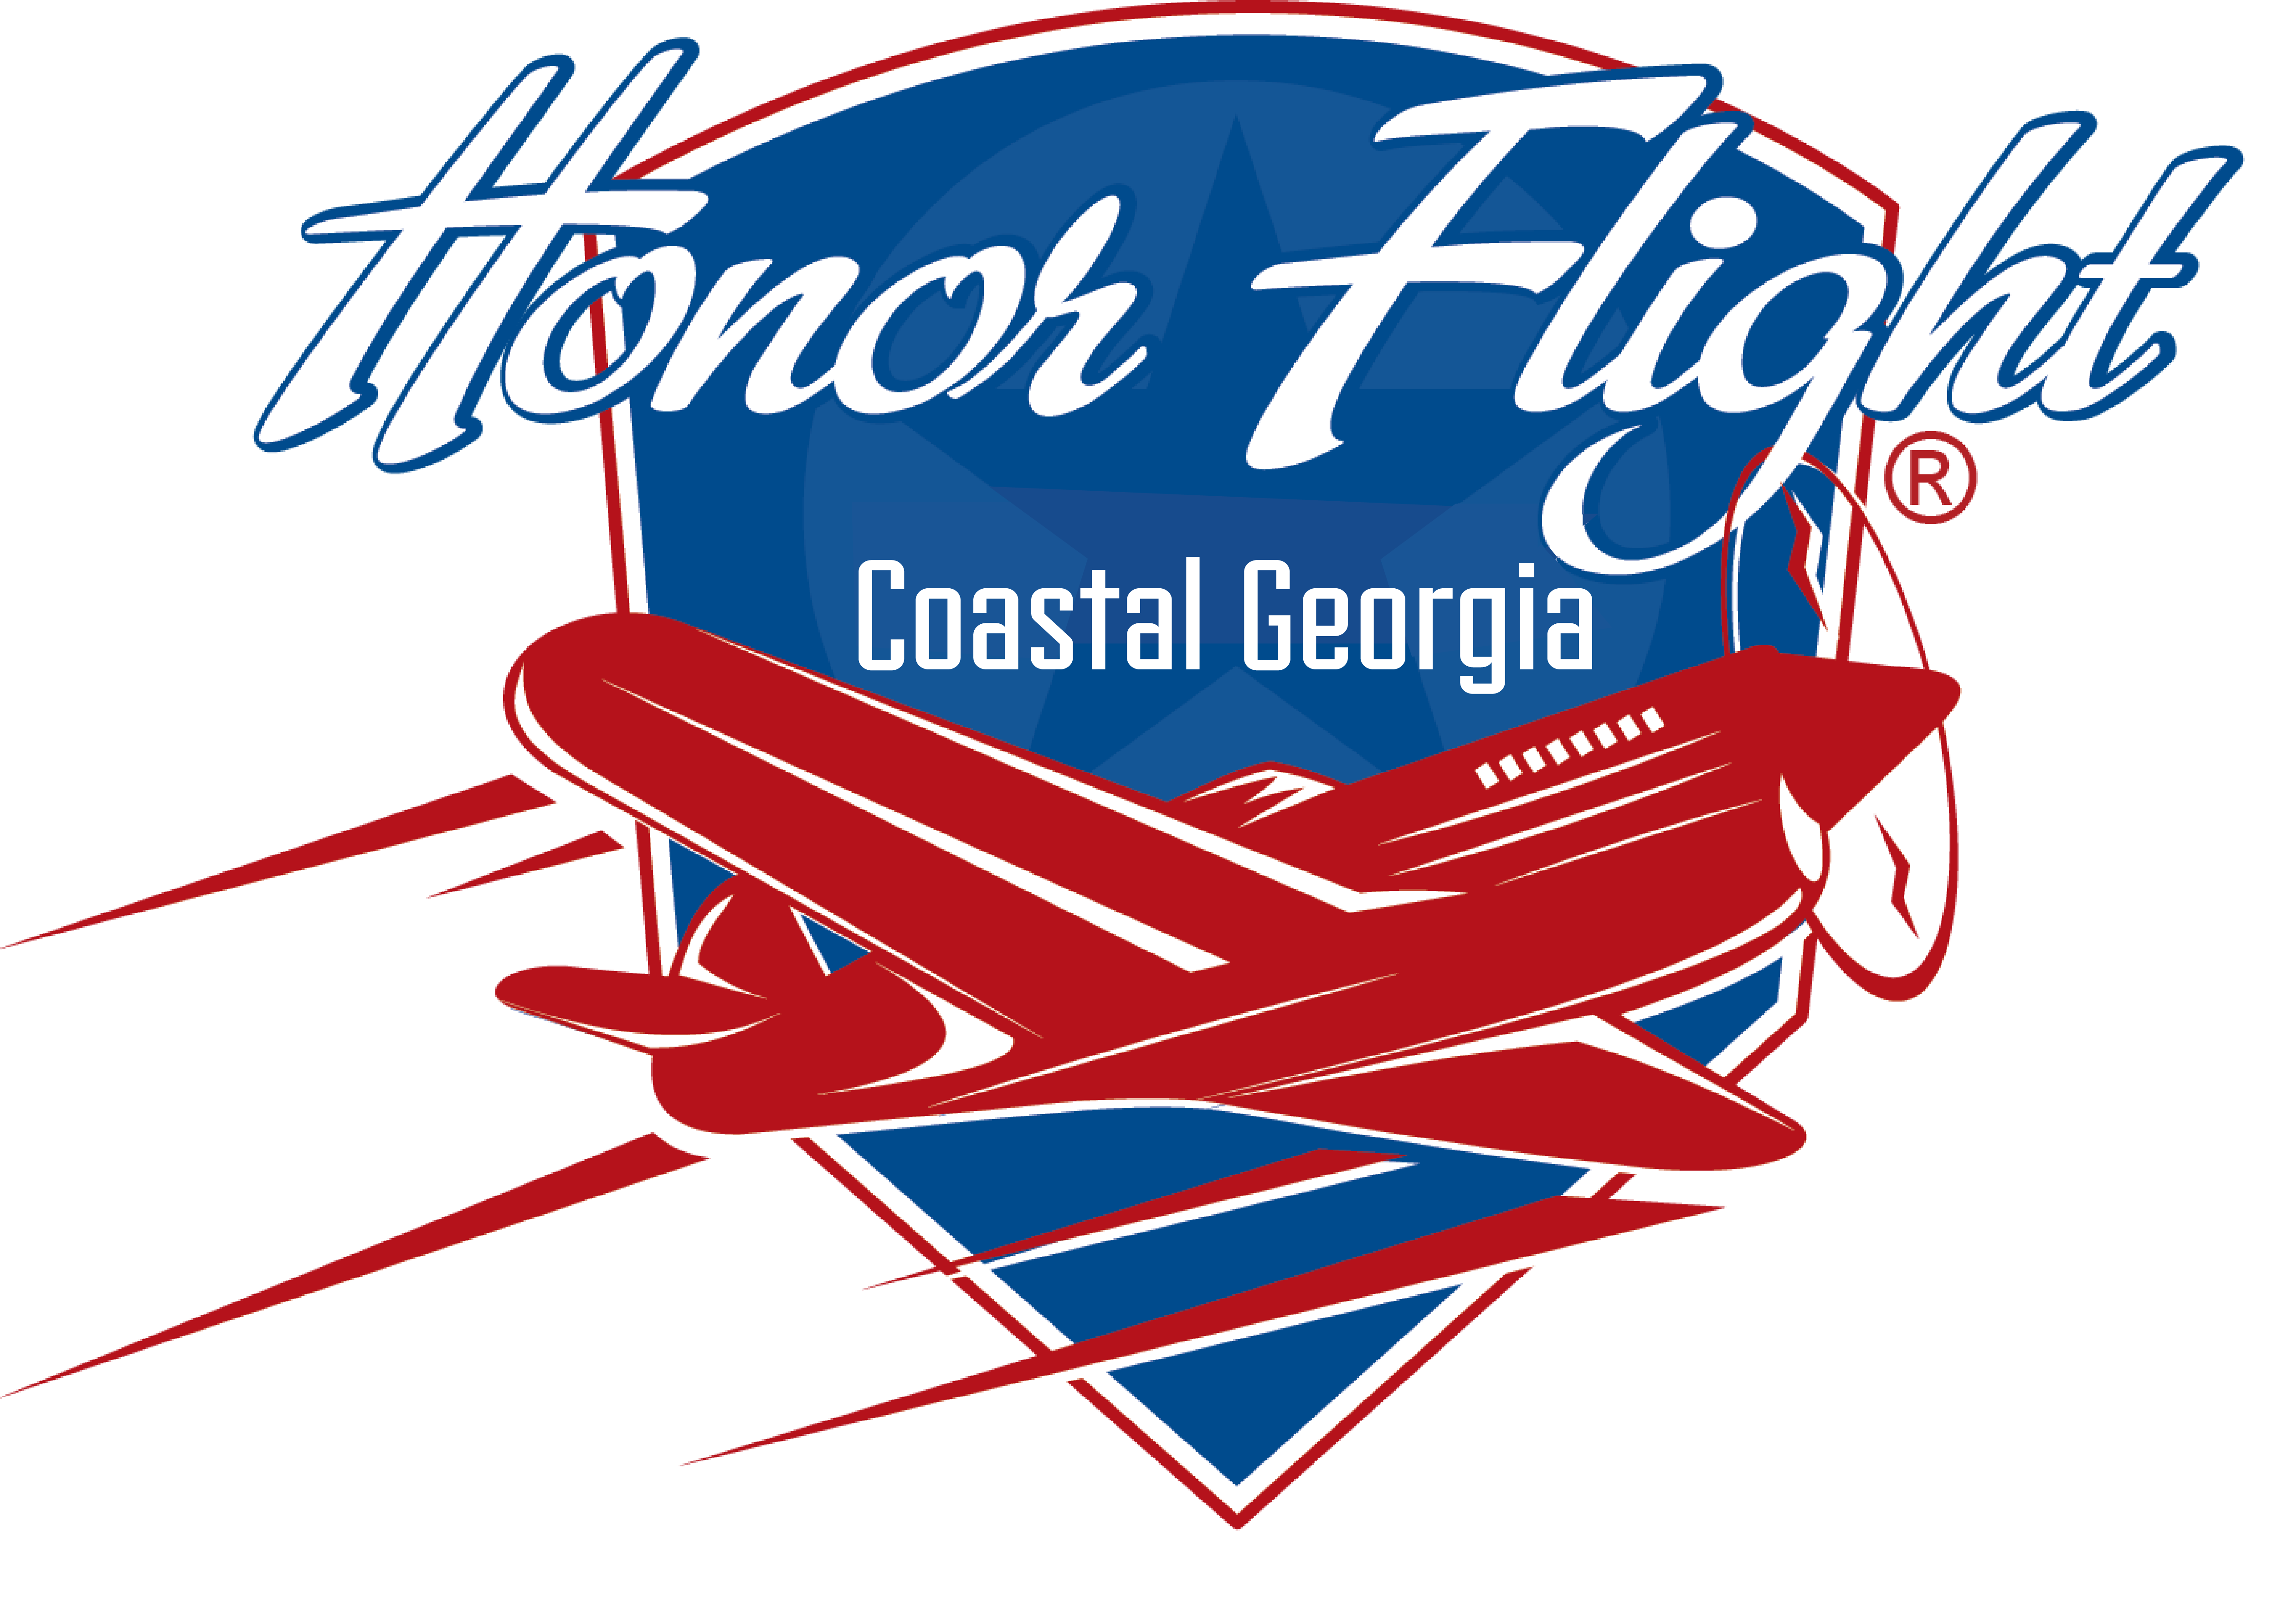 Honor Flight CGA Logo